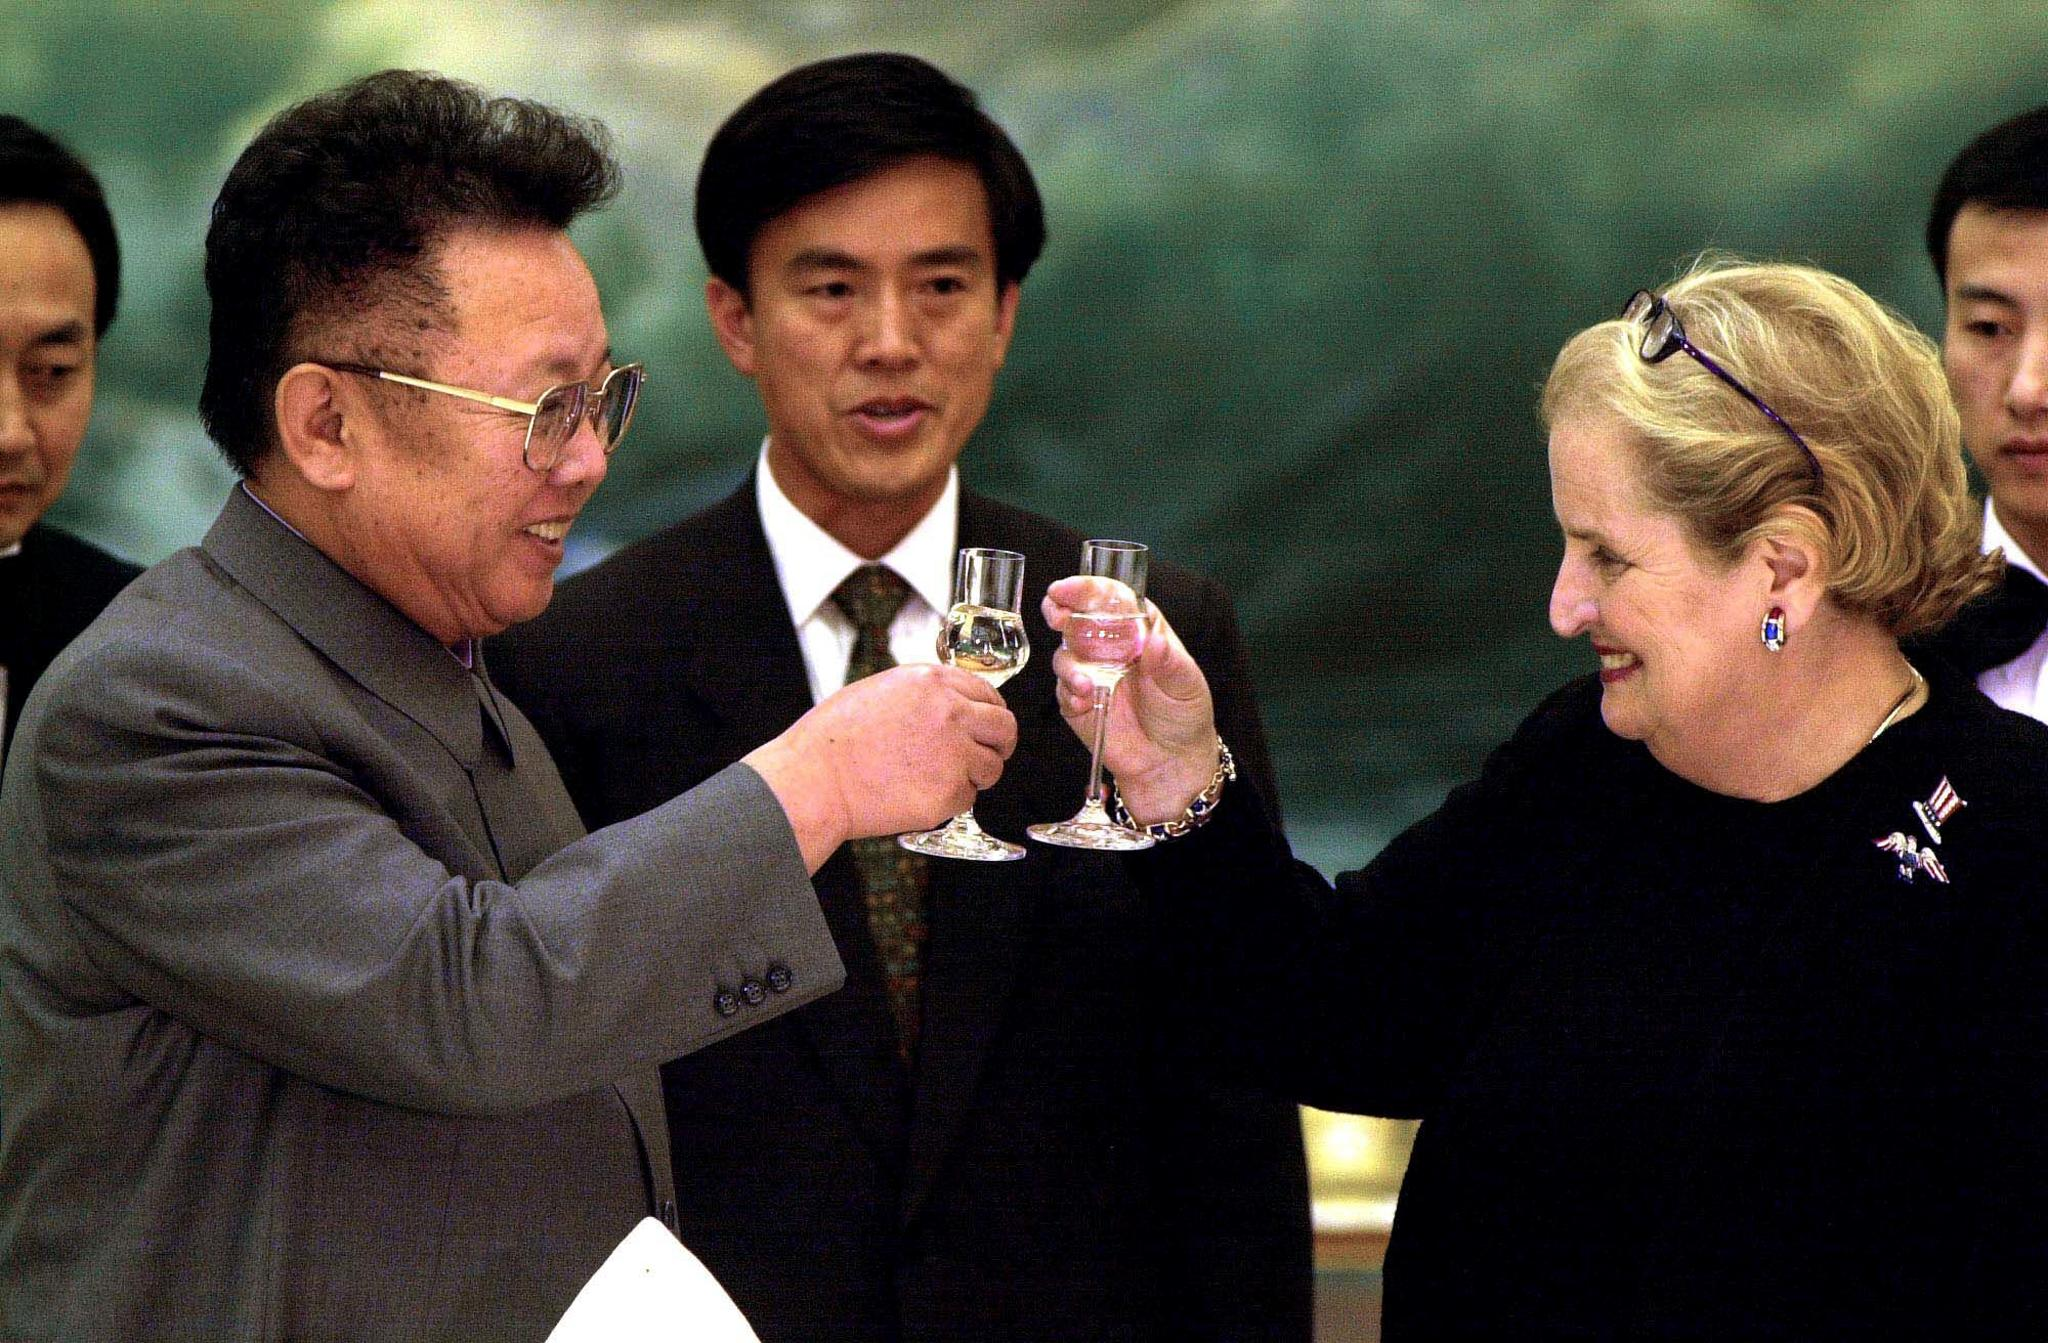 North Korean leader Kim Jong-il toasting U.S. Secretary of State Madeleine Albright when she visited Pyongyang in October 2000.